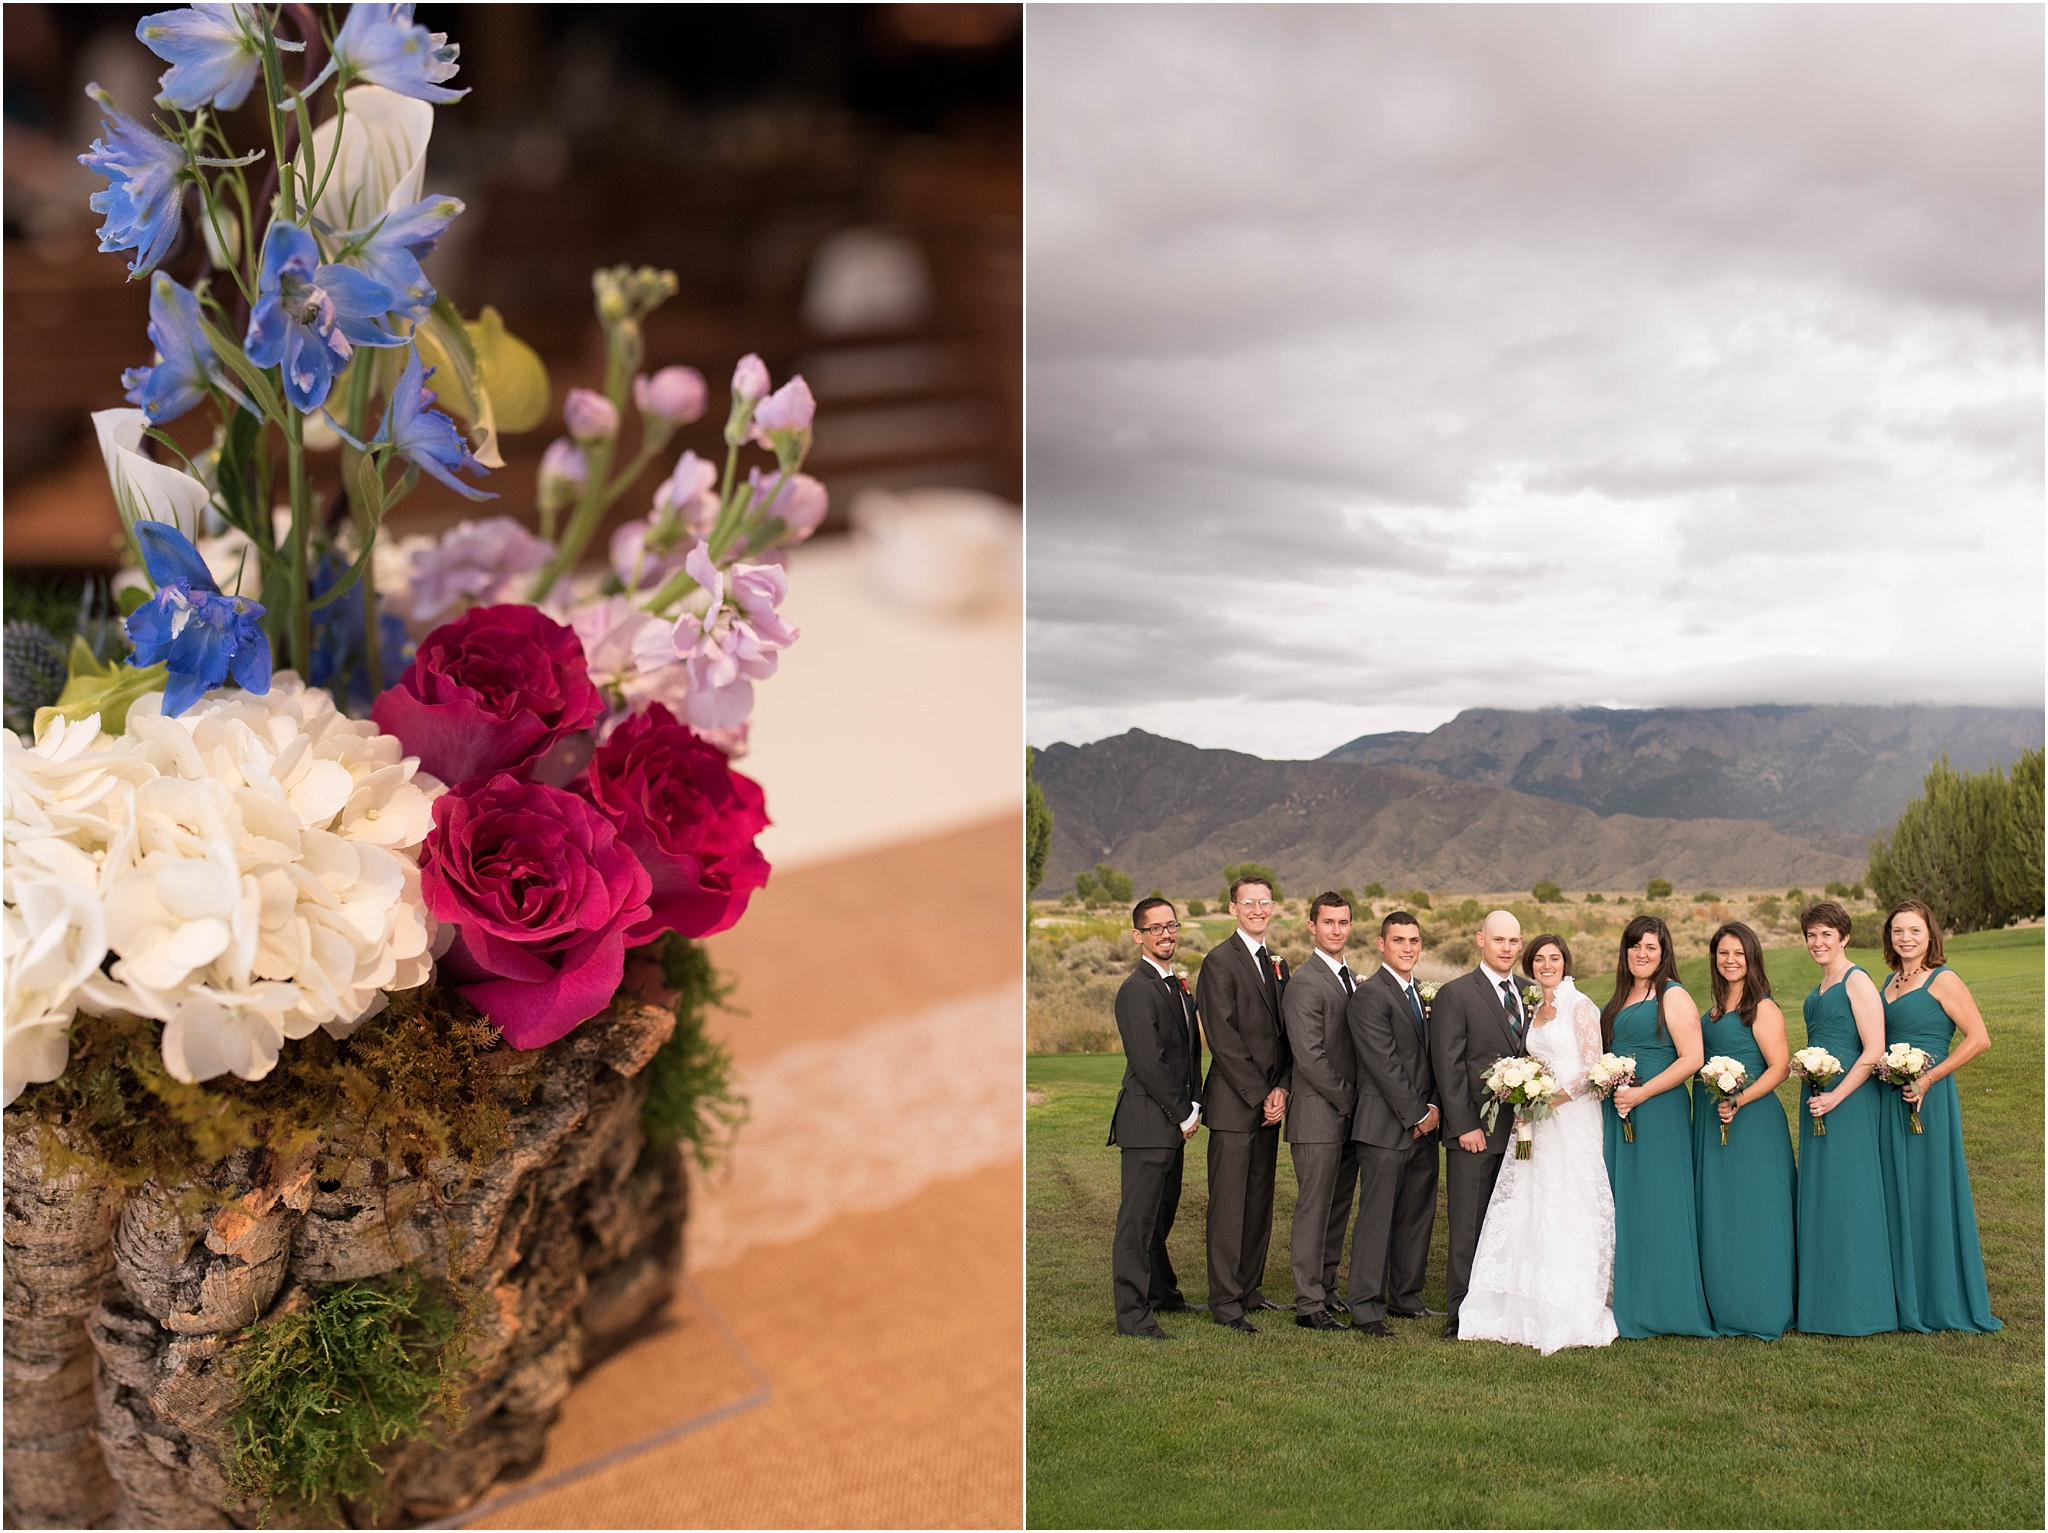 kayla kitts photography - new mexico wedding photographer - albuquerque botanic gardens - hotel albuquerque-casa de suenos_0209.jpg